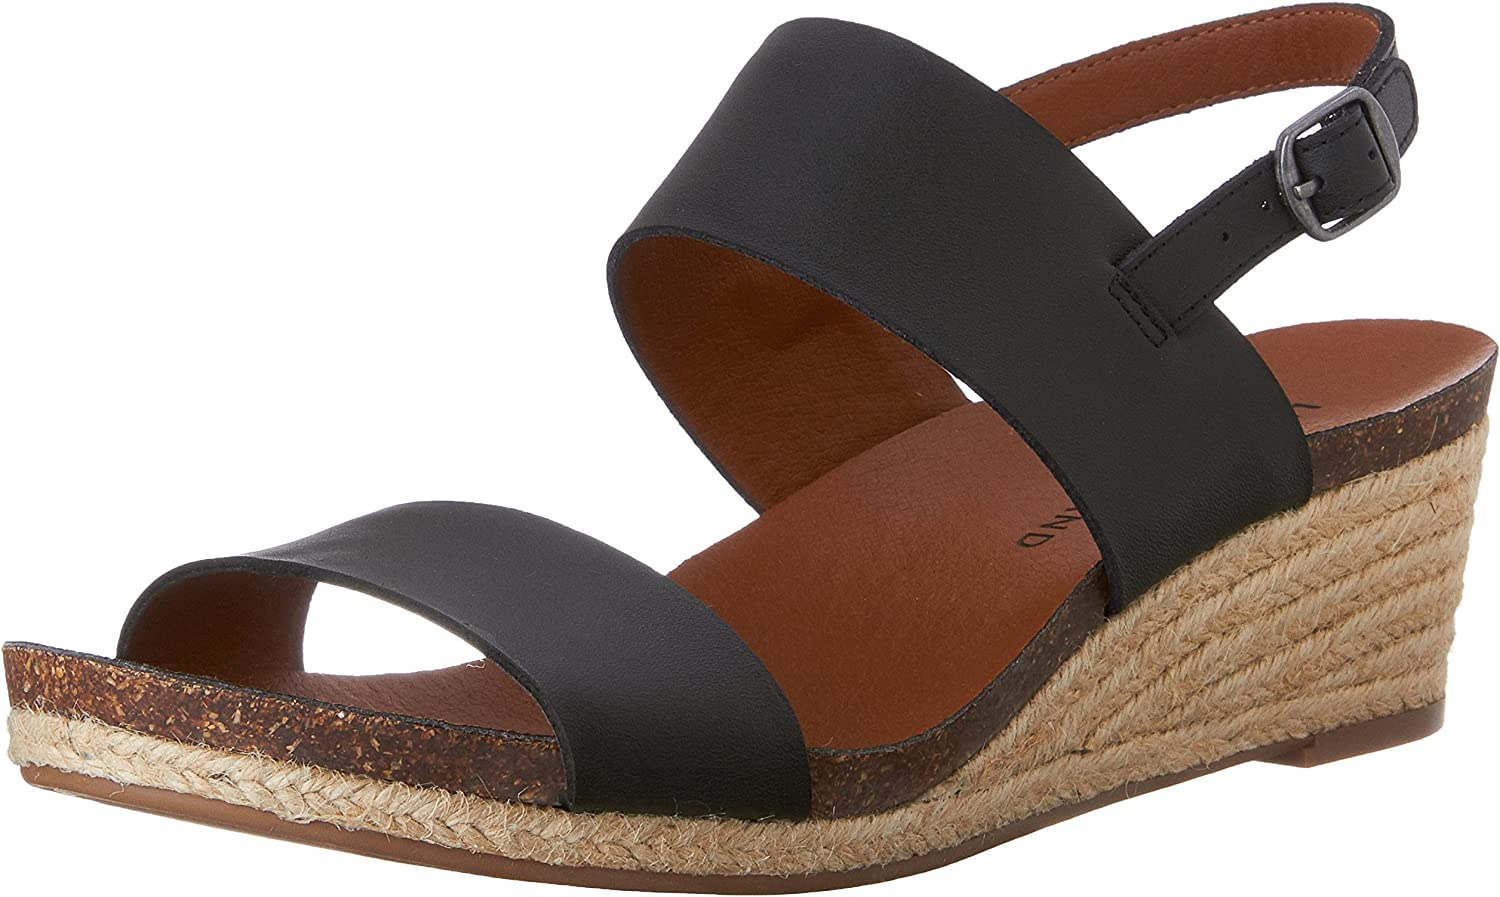 Lucky Brand Women's Jette Wedge Sandal